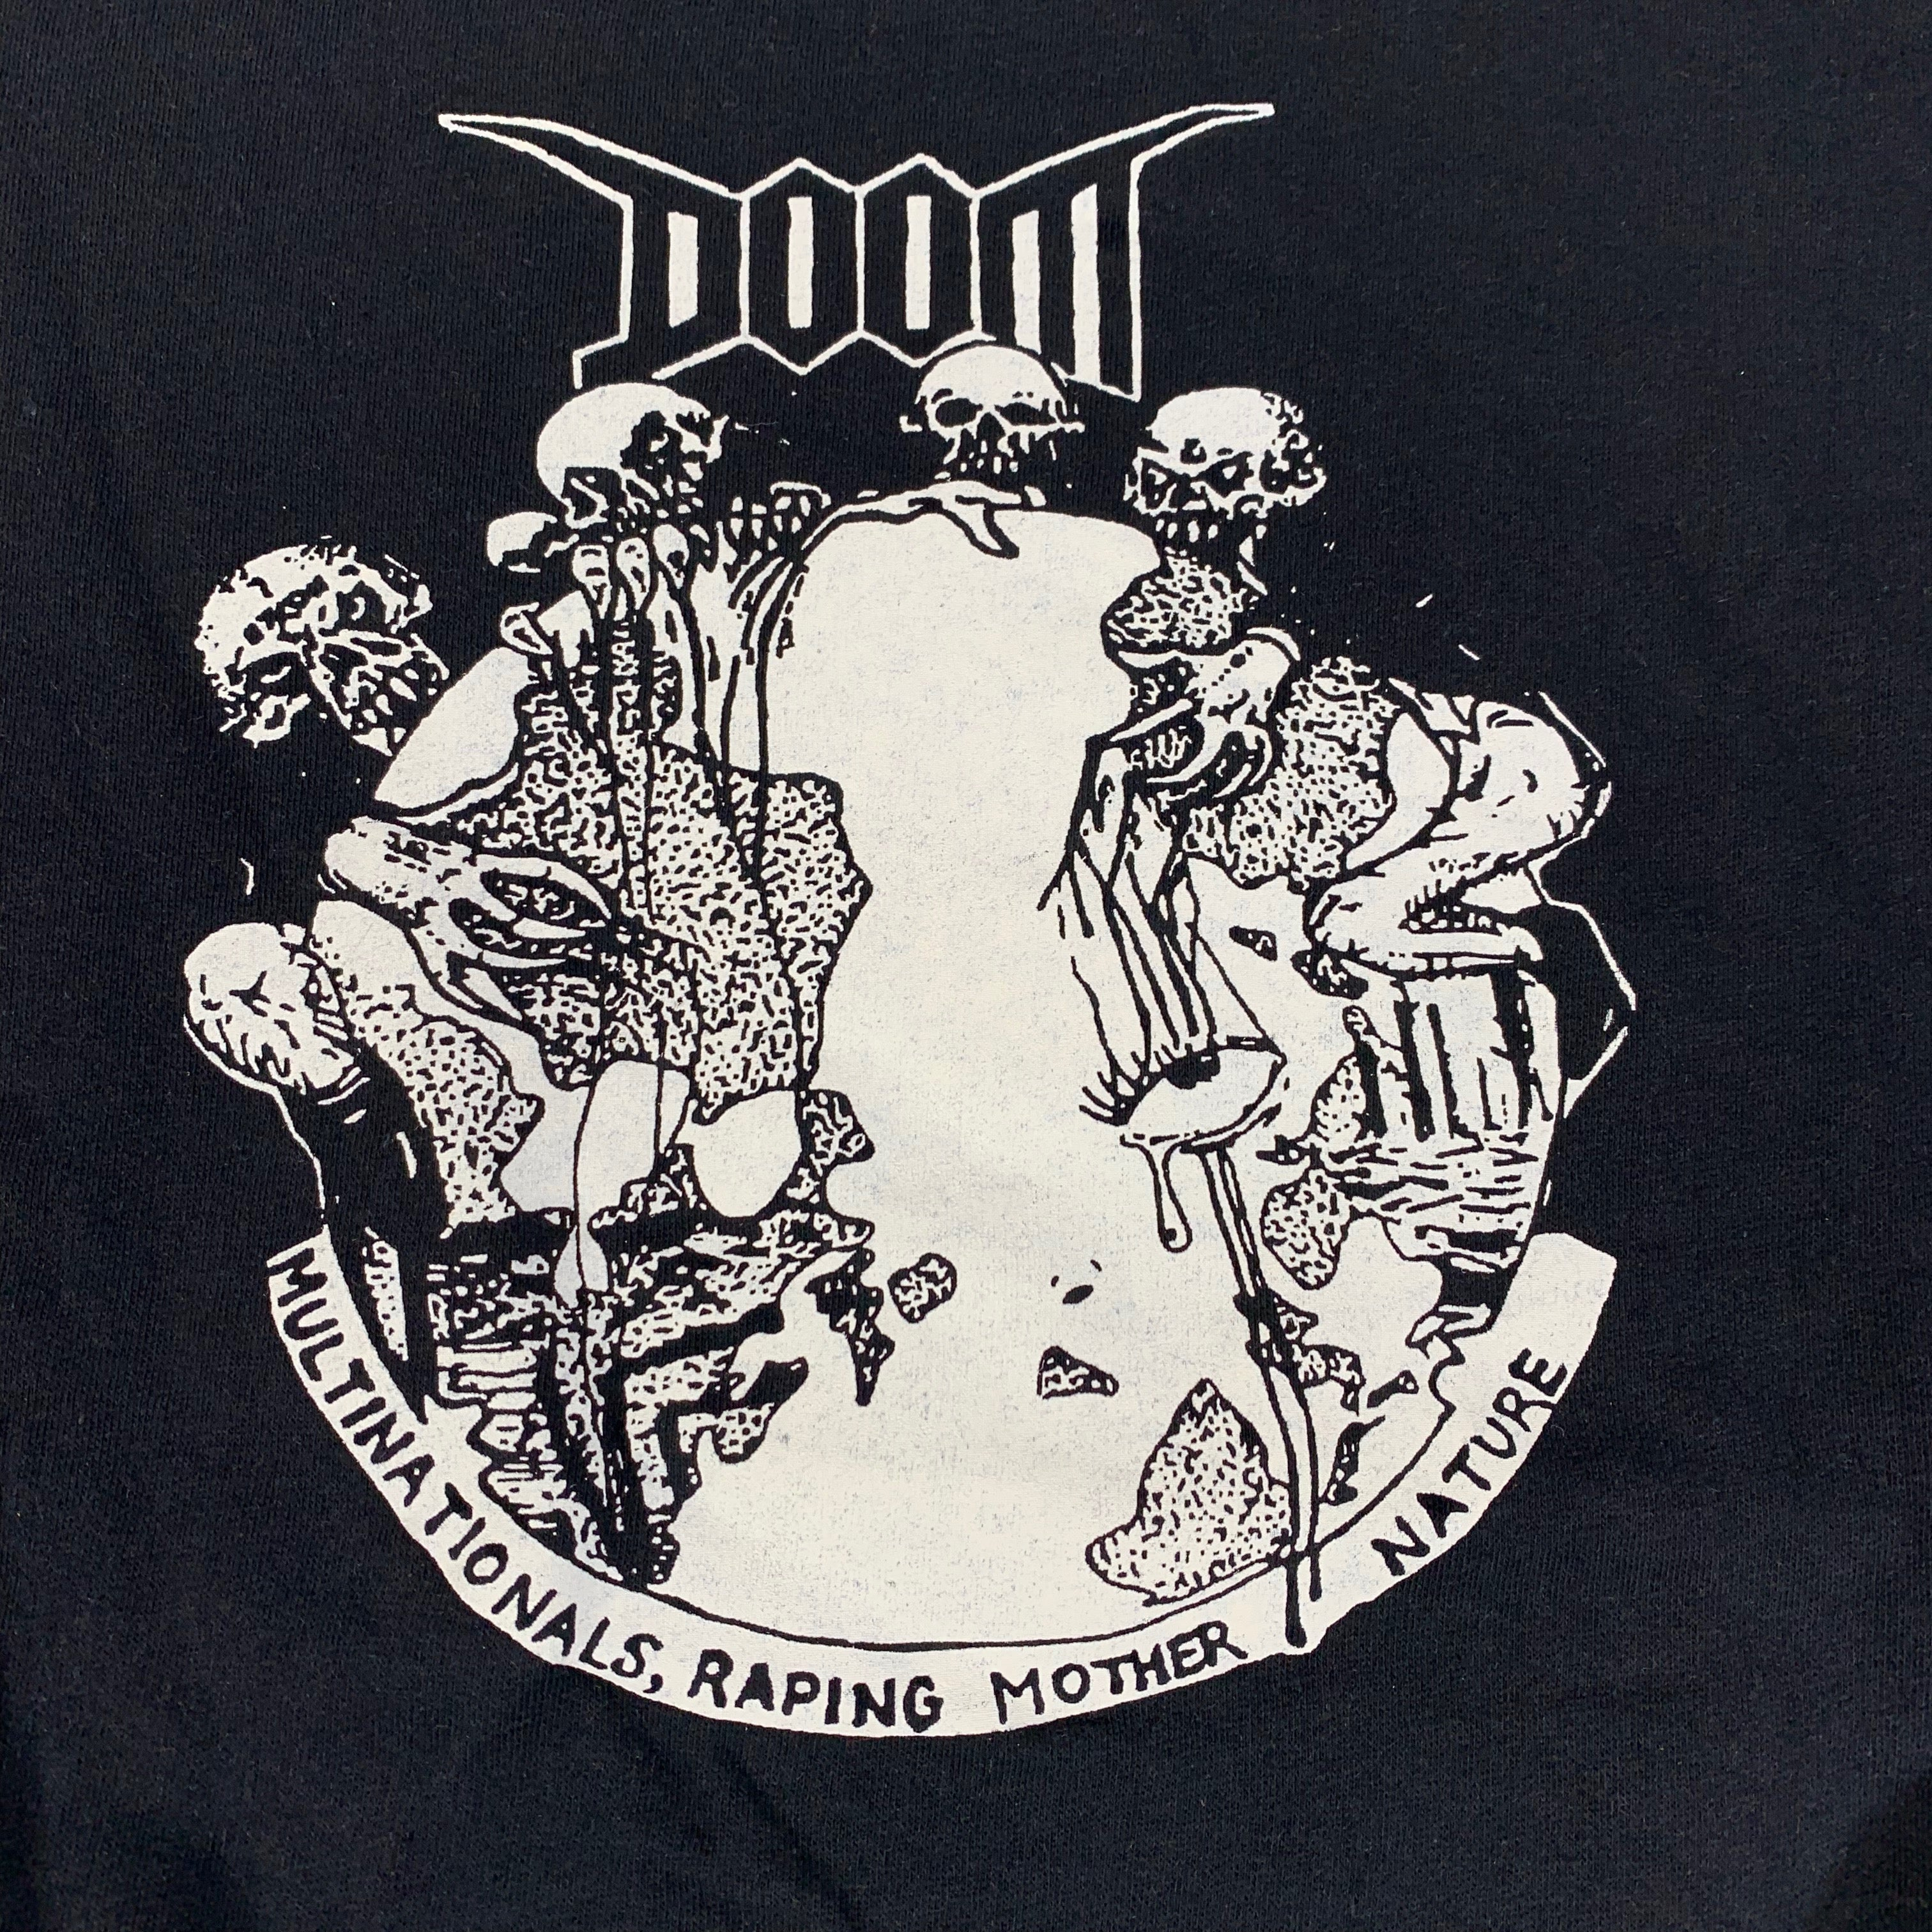 "Vintage Doom ""Multinationals, Raping Mother Nature"" Crewneck Sweatshirt"